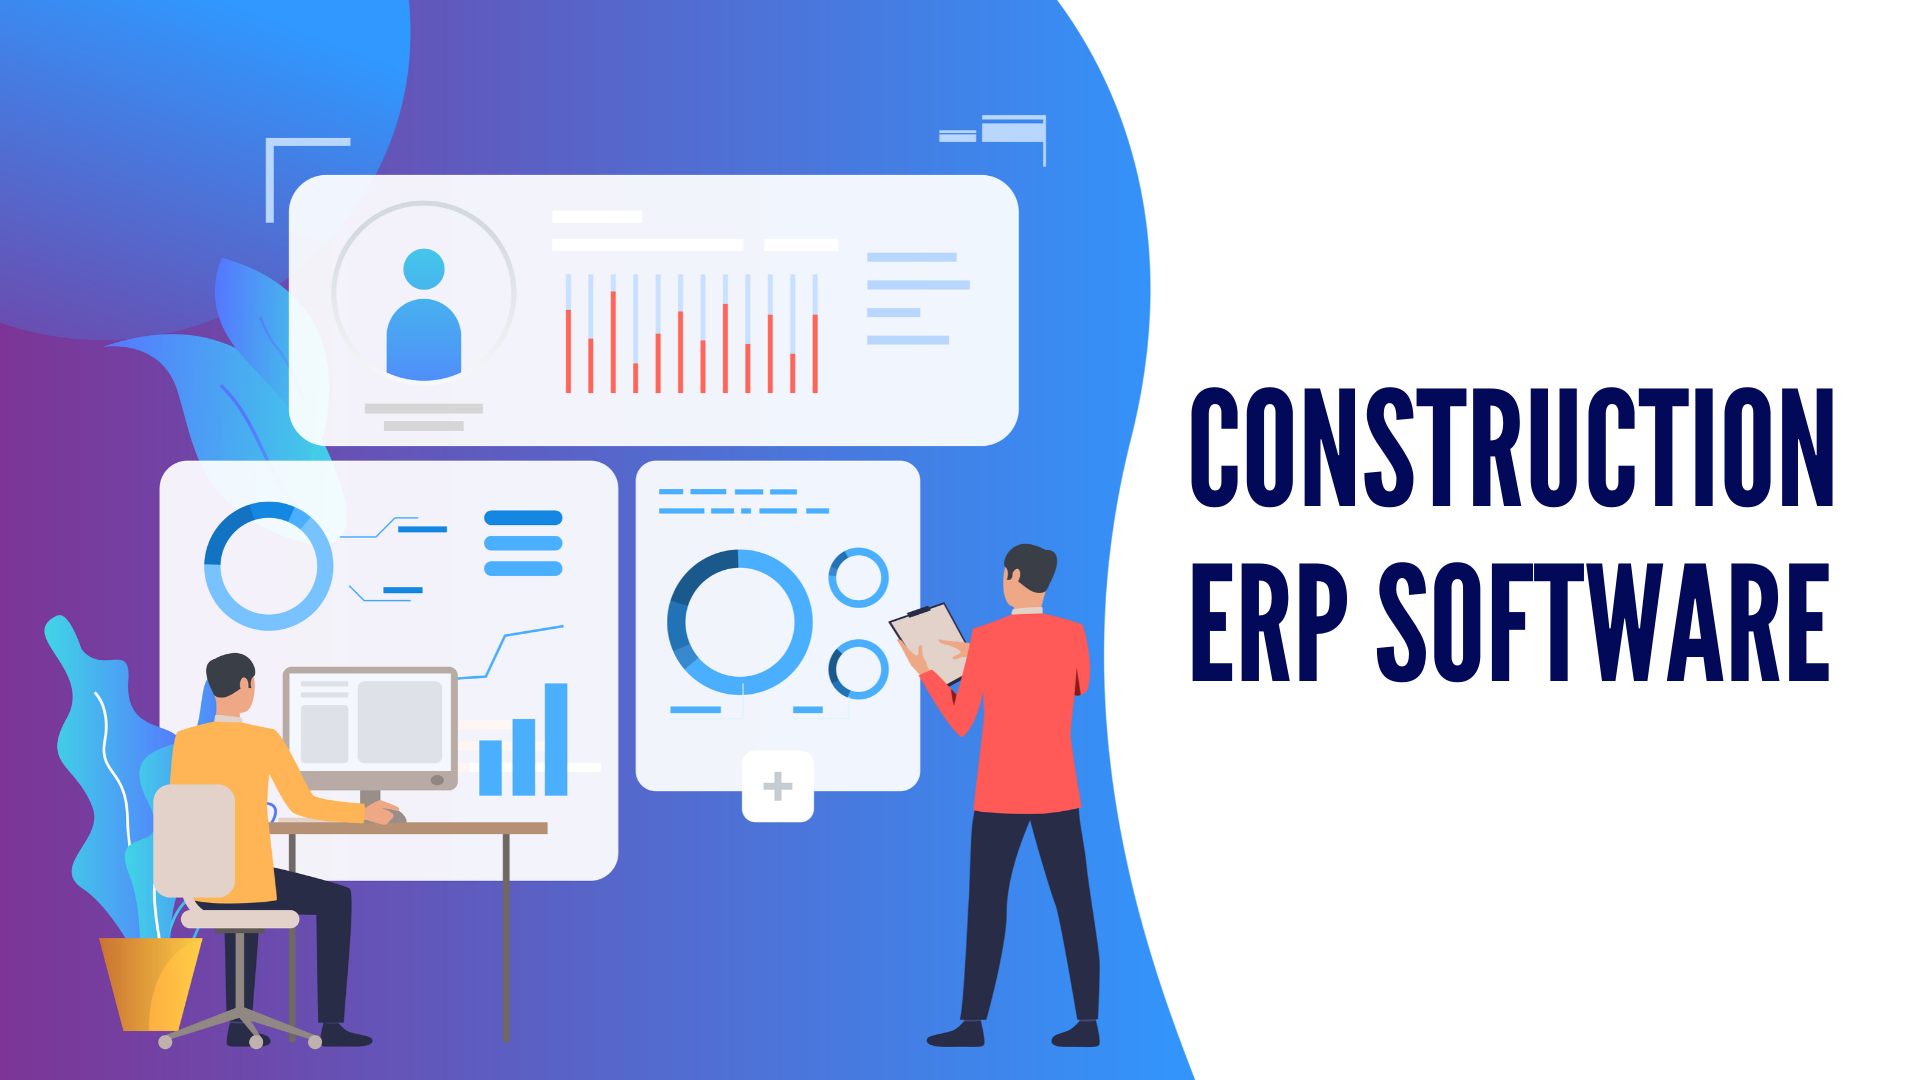 What Industries an ERP can be used for